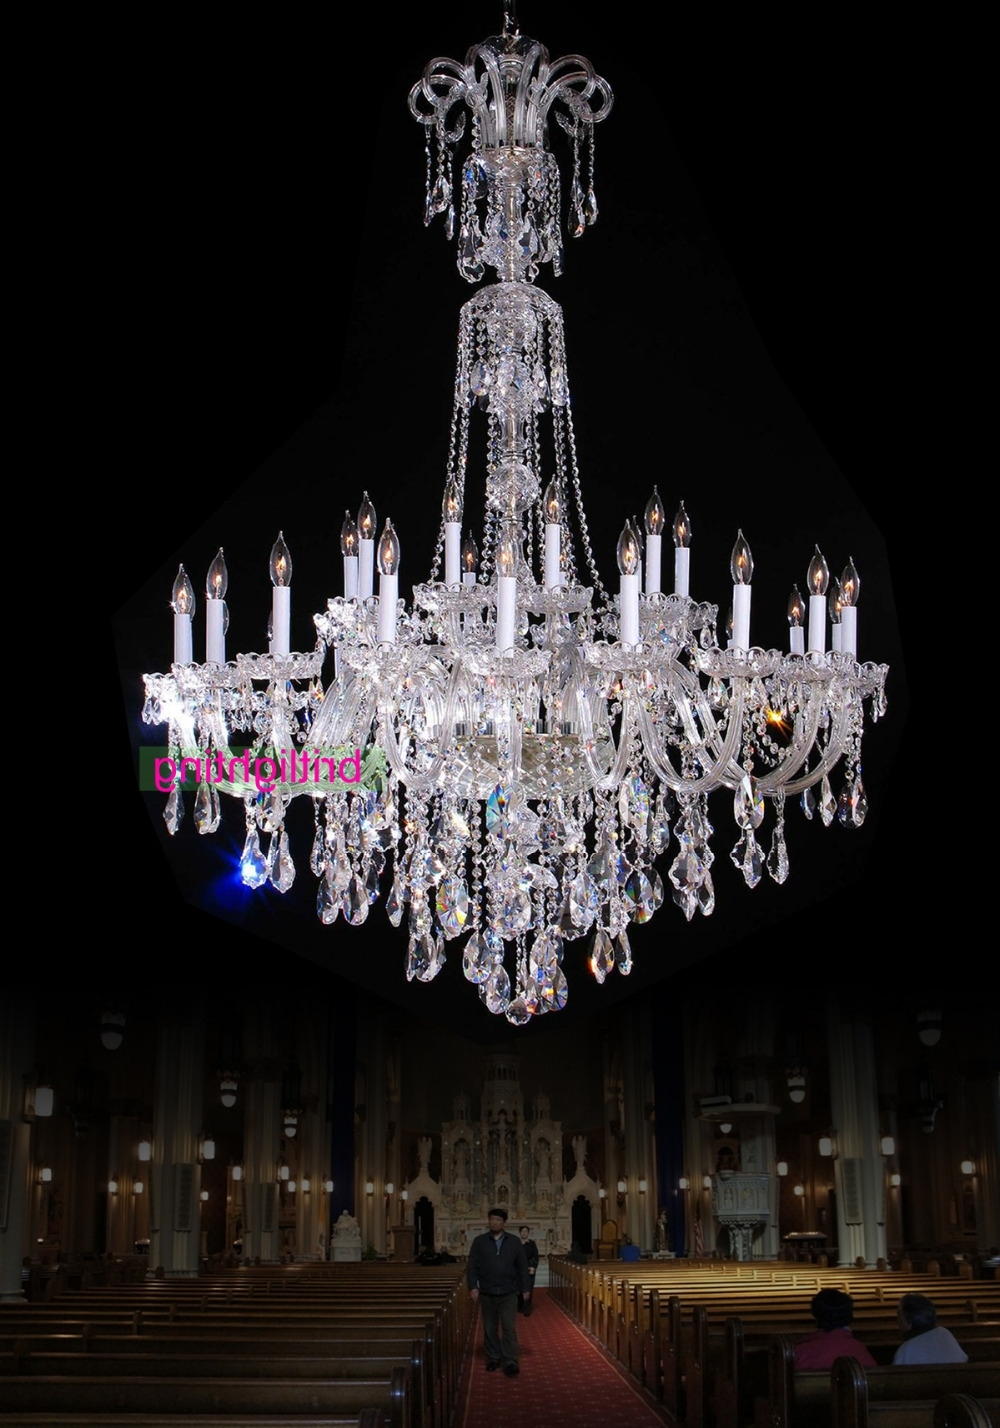 Large Chandelier With Crystal Pendants Big Lamp For Hotel Extra With Regard To Current Extra Large Chandelier Lighting (View 11 of 20)